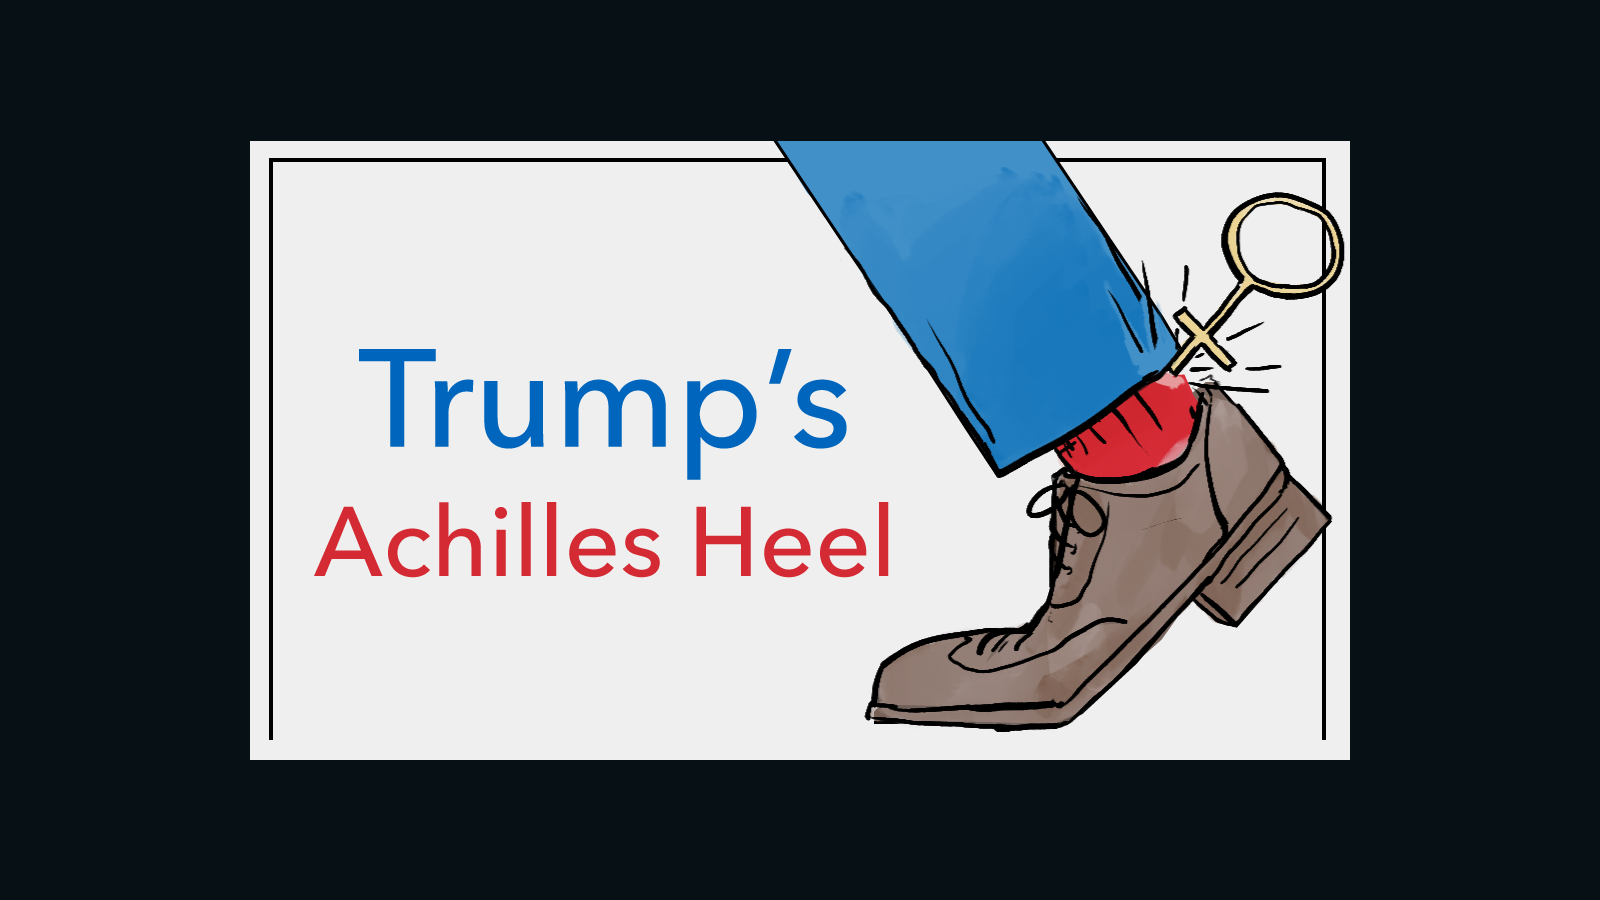 safety culture the achilles heel of The english language is the world's achilles heel april 3, 2018 712am edt filtering especially when conversations touch on culture and intimate beliefs.